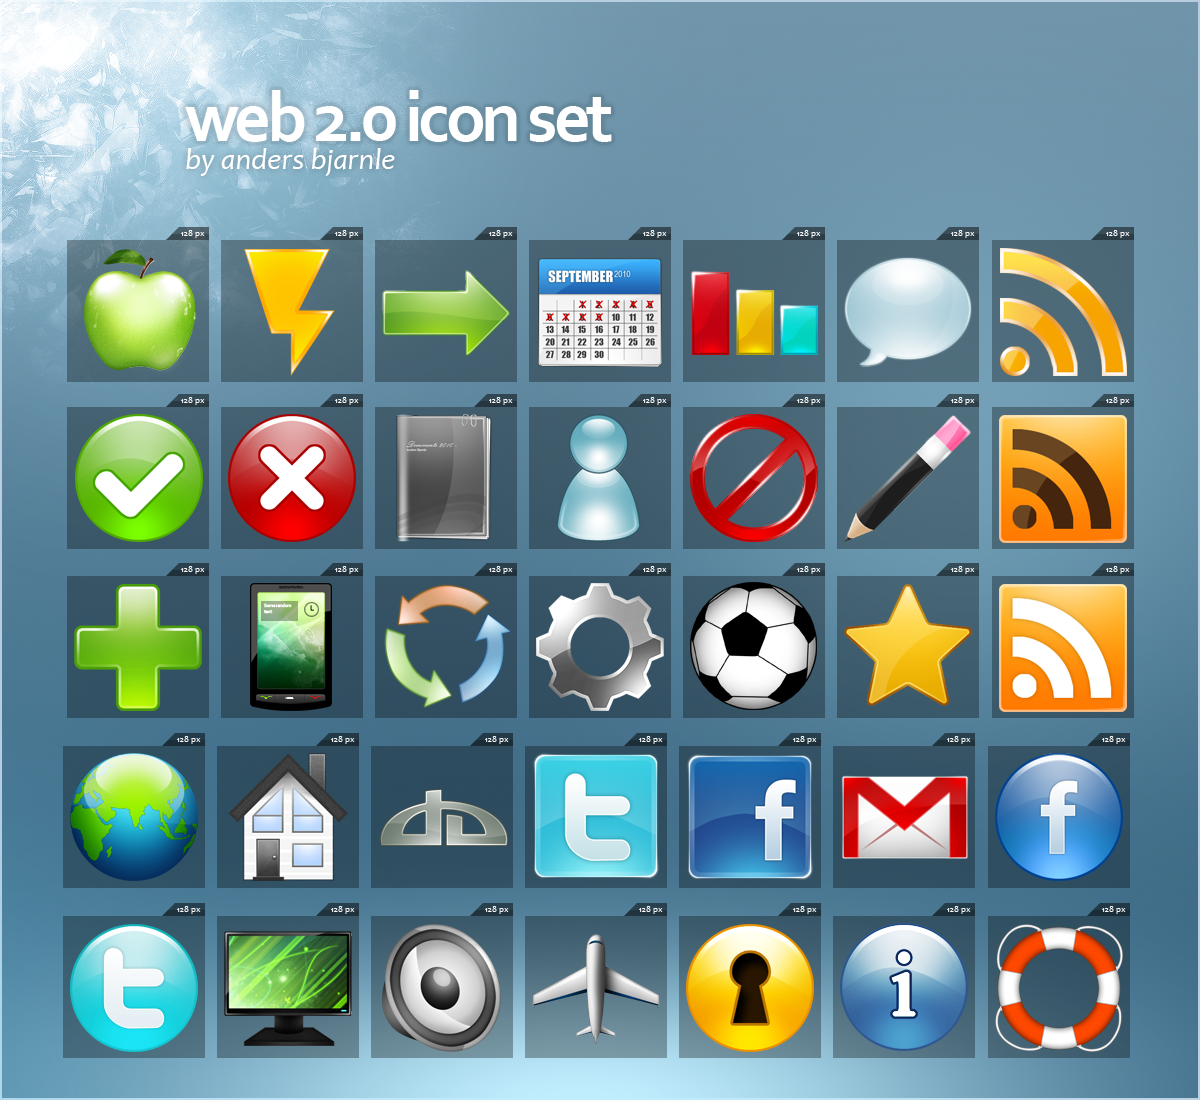 web 2 icon set by Cheezen